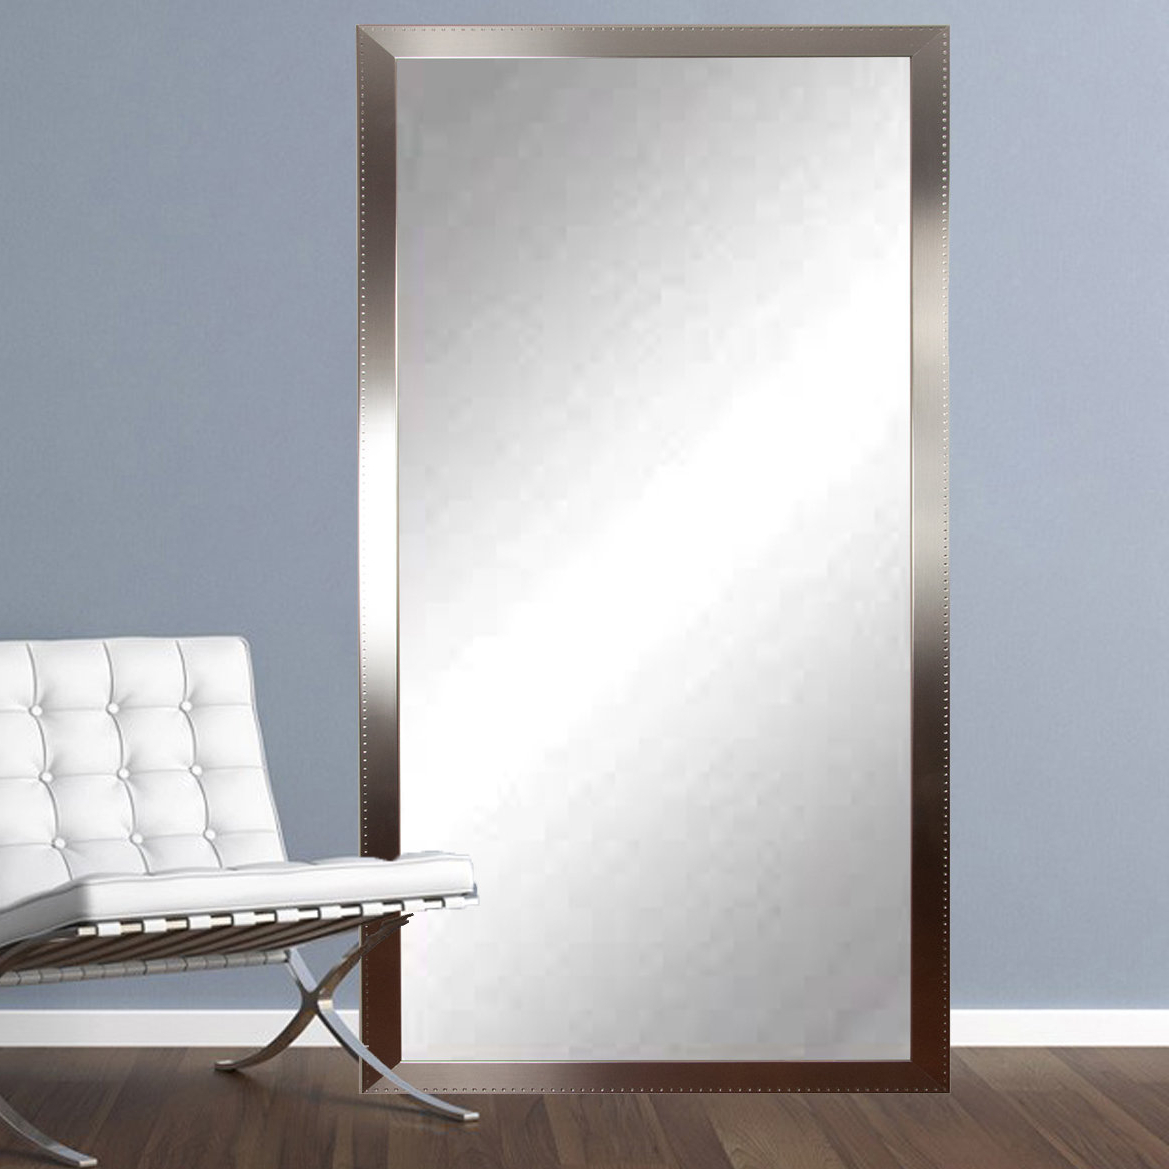 Trendy Leaning Wall Mirrors With Regard To Embossed Steel Leaning Wall Mirror (View 18 of 20)